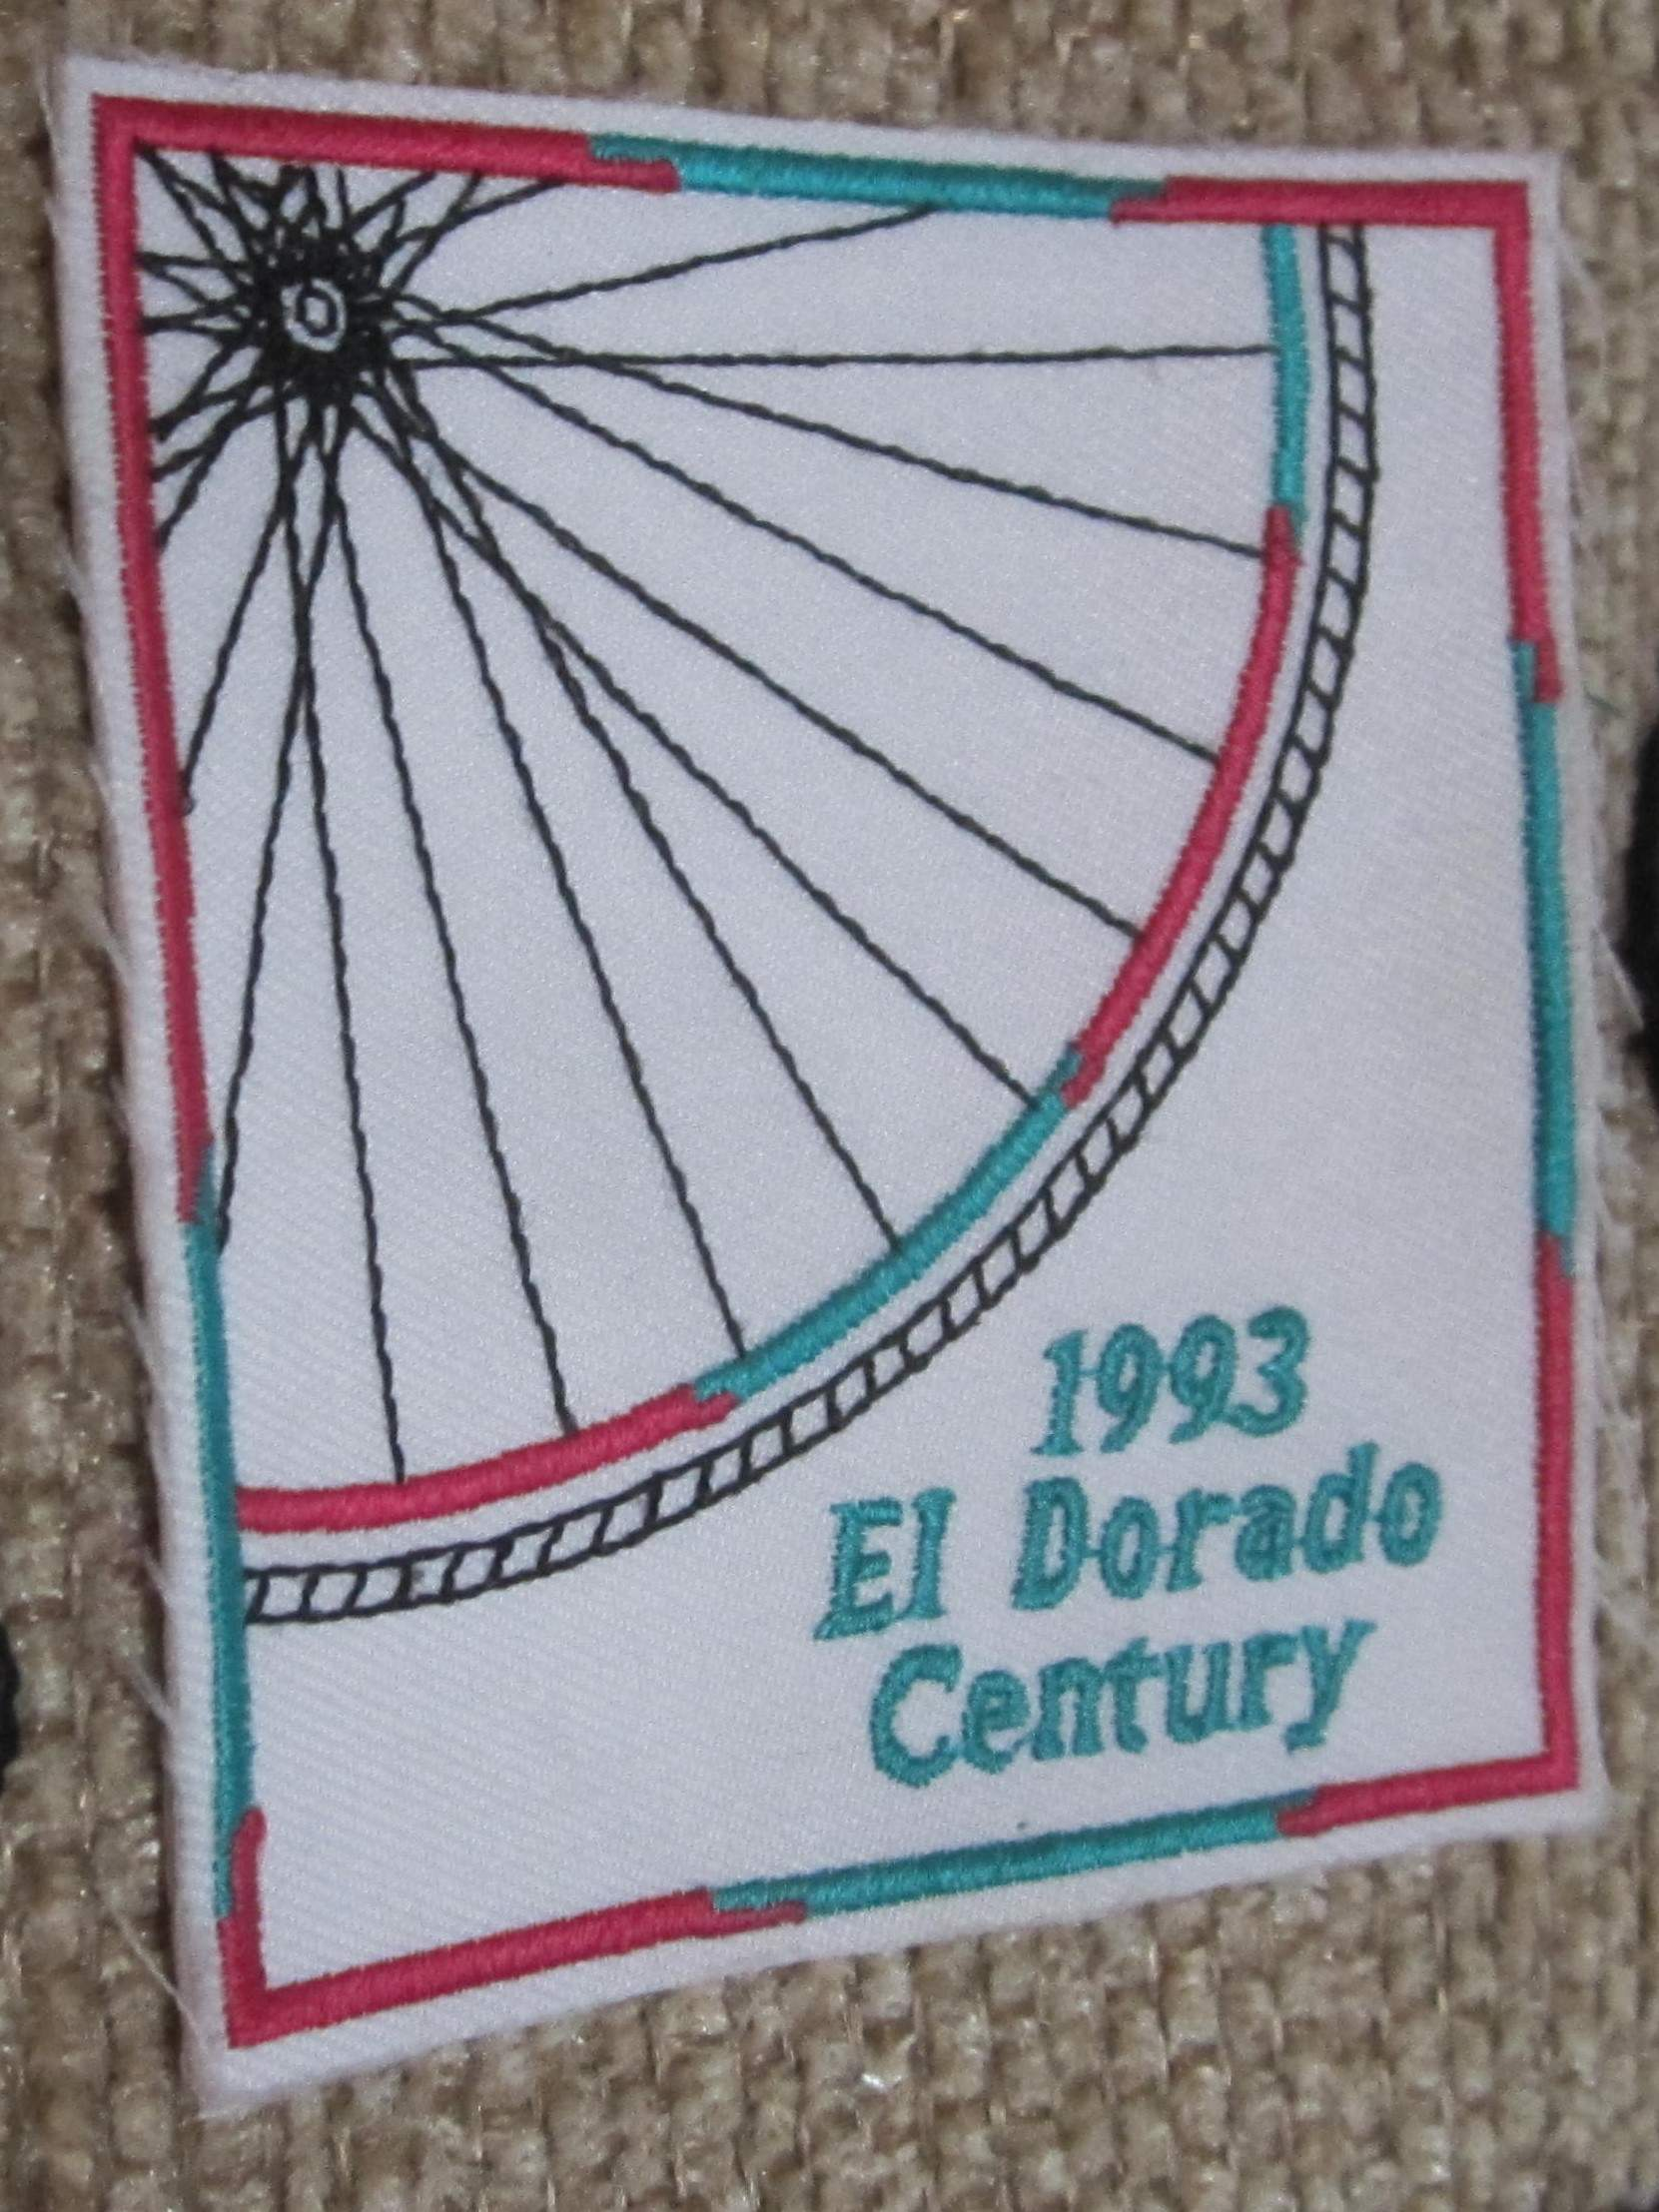 1993 El Dorado Century cycling patch